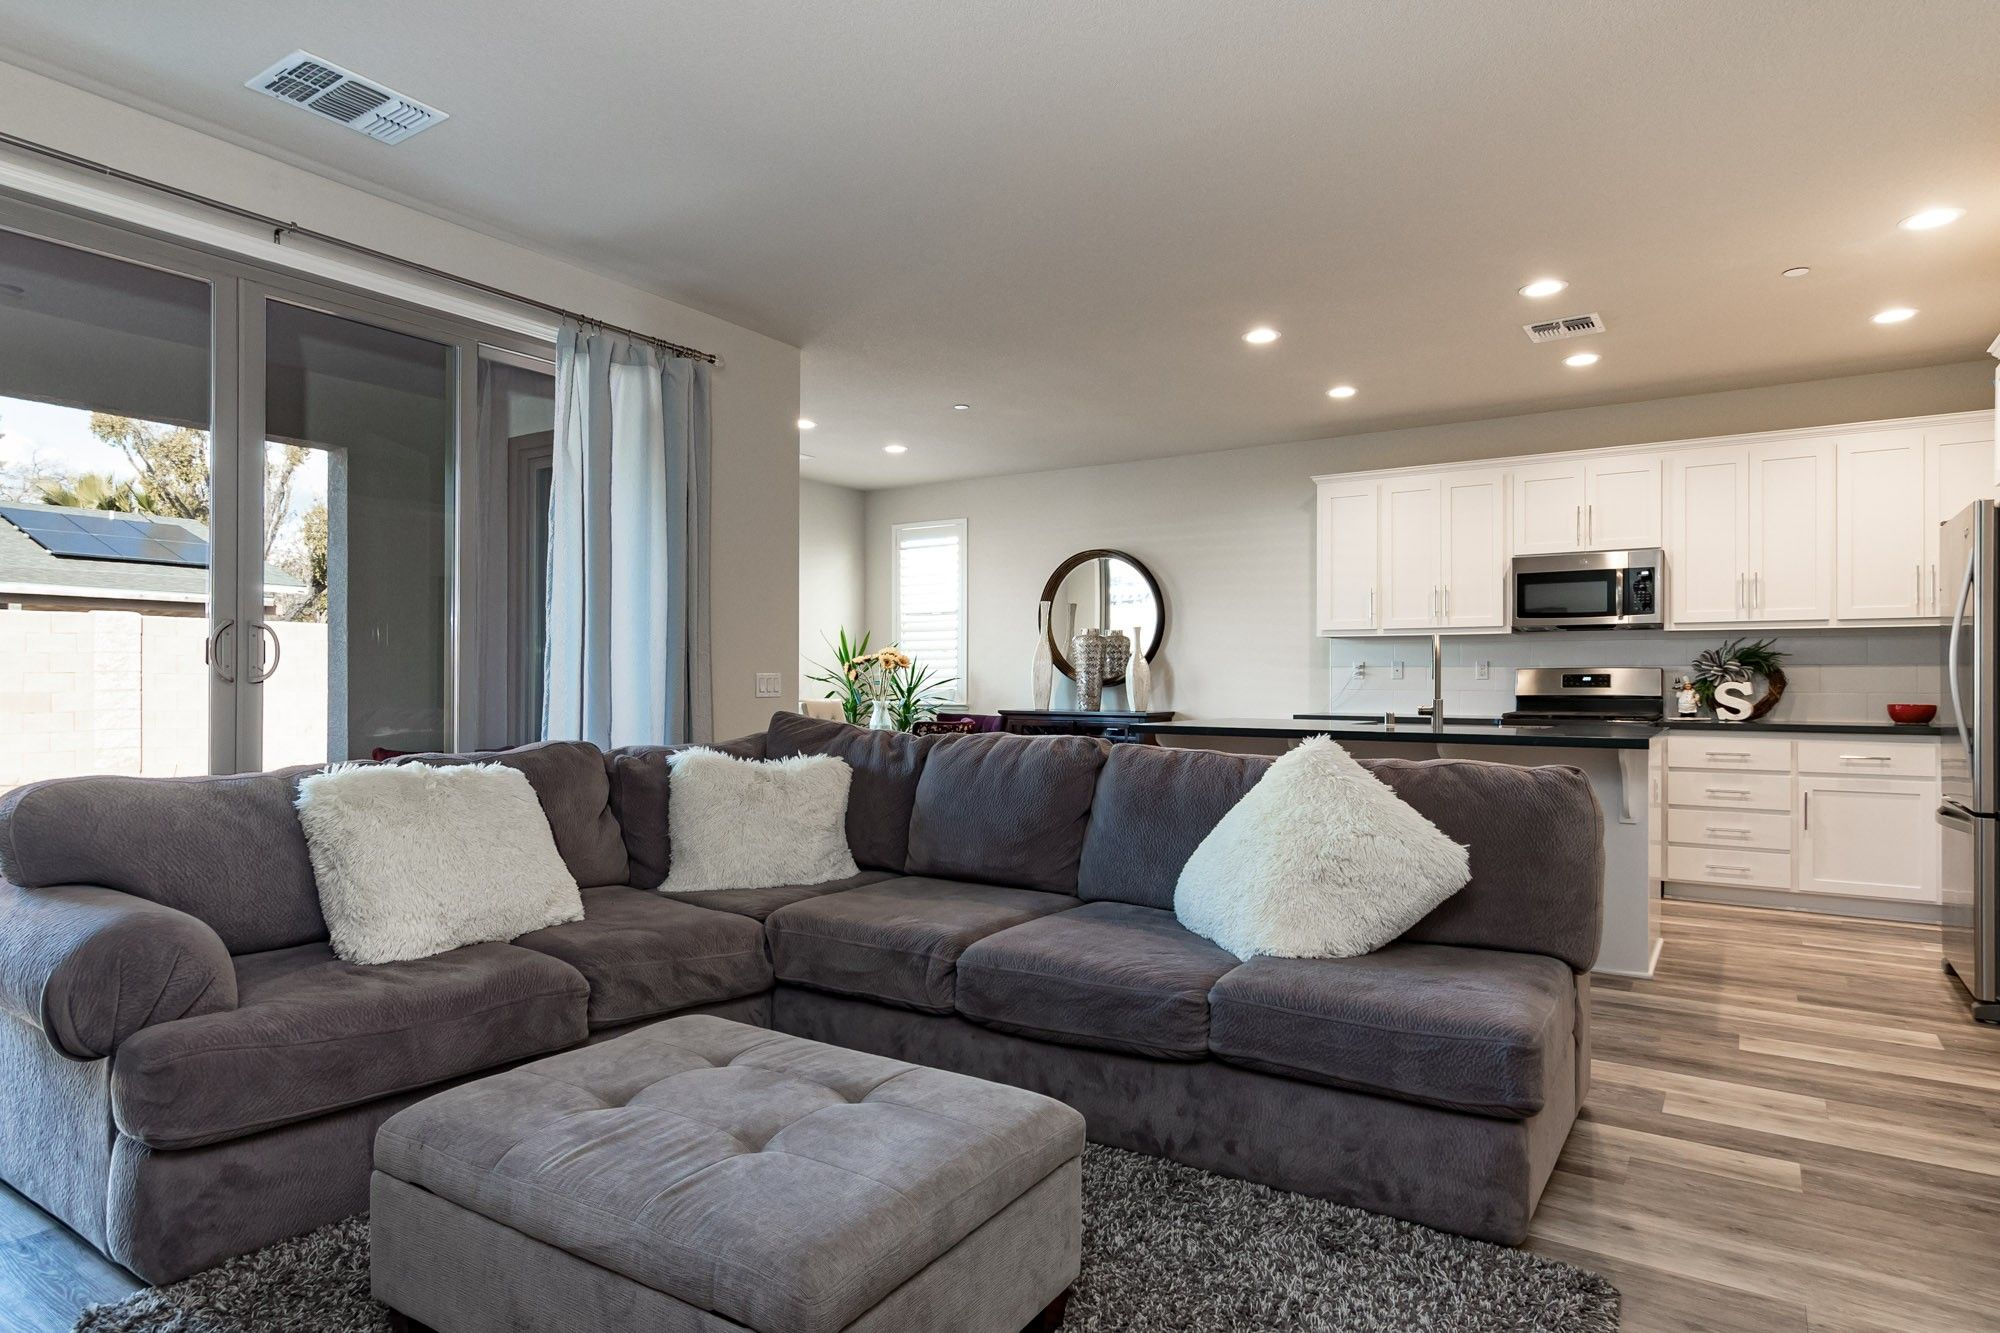 Living Area featured in The Ambiance By Florsheim Homes in Modesto, CA